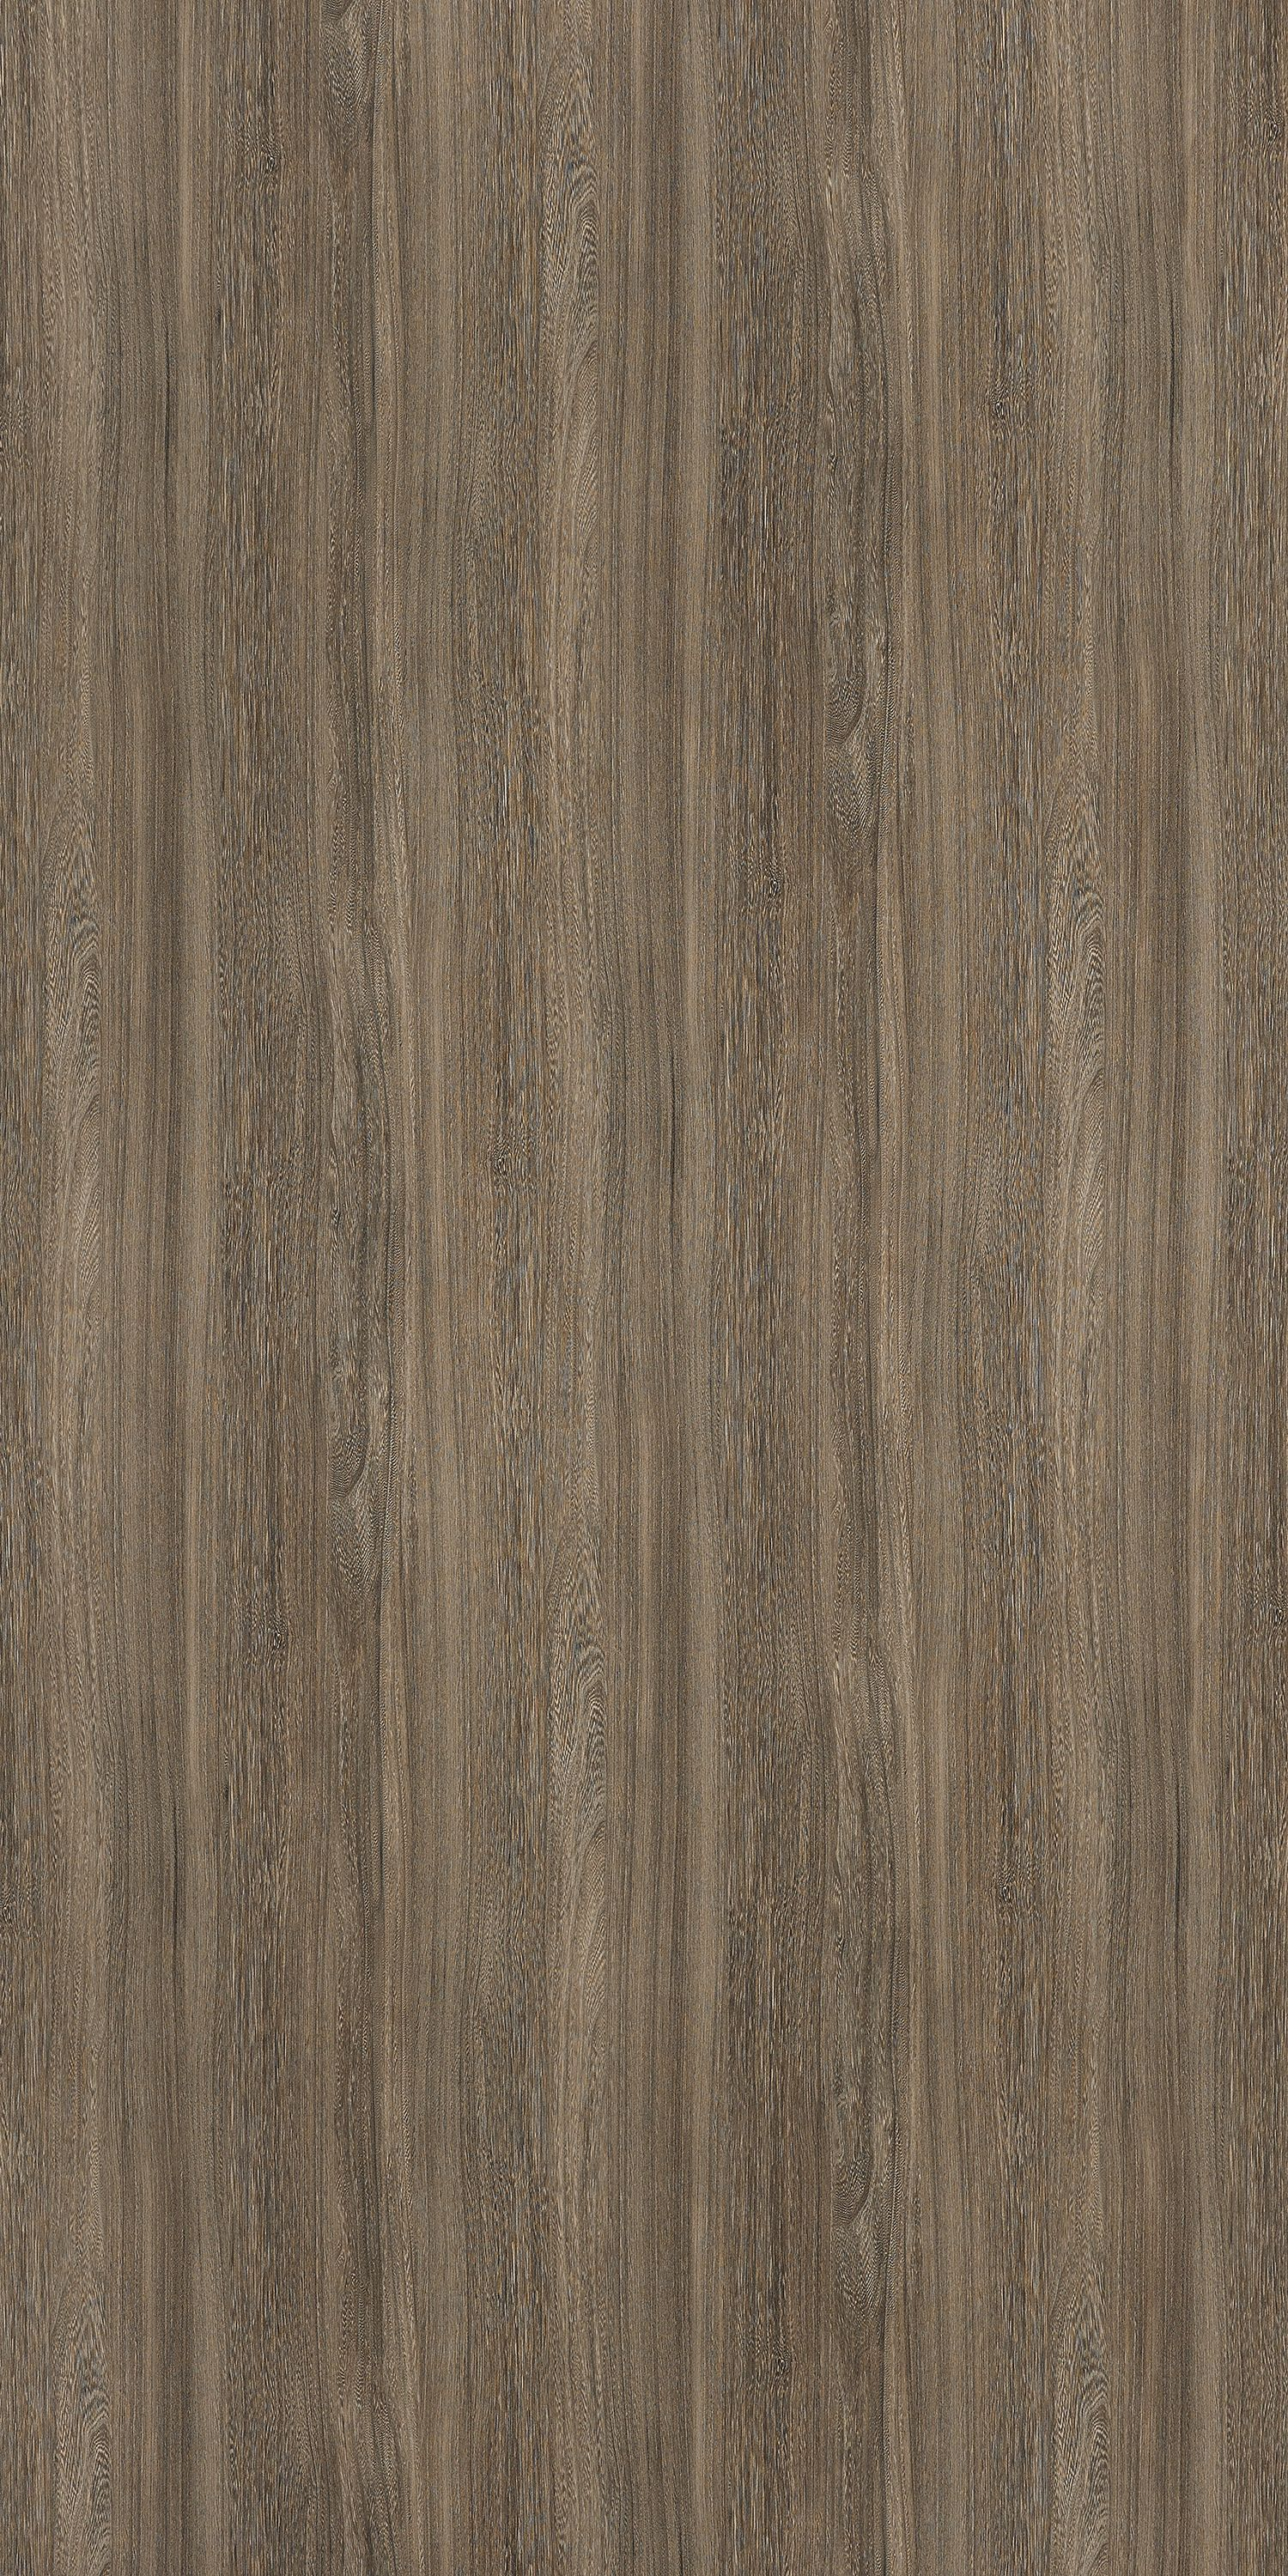 Pin By Frankinism On Wood In 2019 Wood Texture Veneer